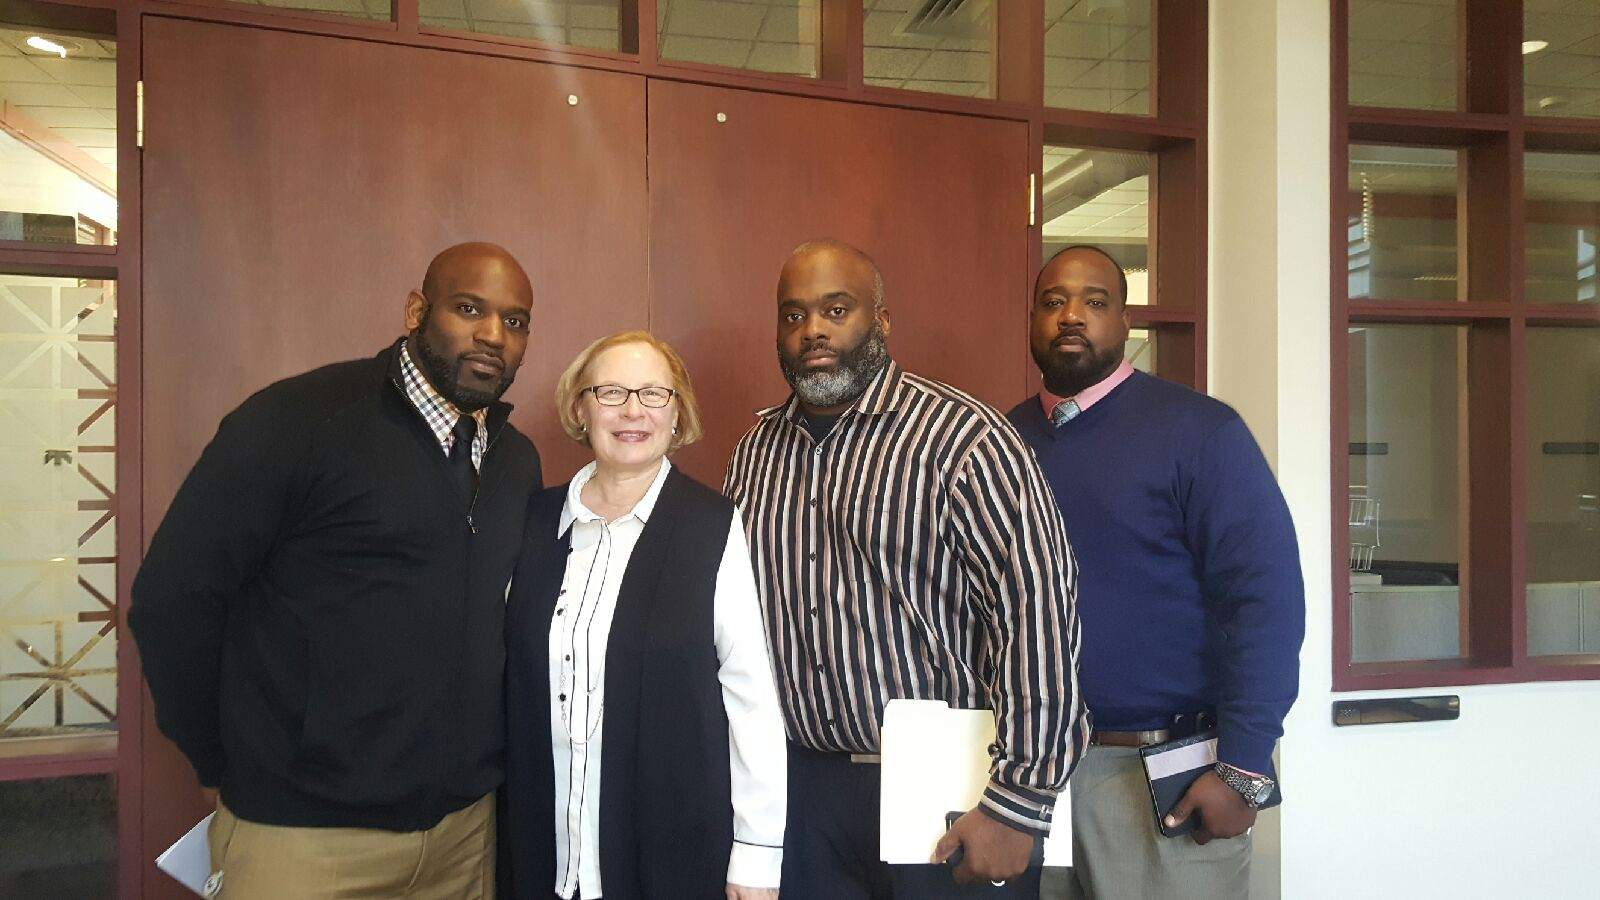 Members of Welcome to Reality meet with the sponsoring senator (from left to right): Anthony Gay, Sen. Terry Gerratana, Qur-an Webb, Marcus Stallworth